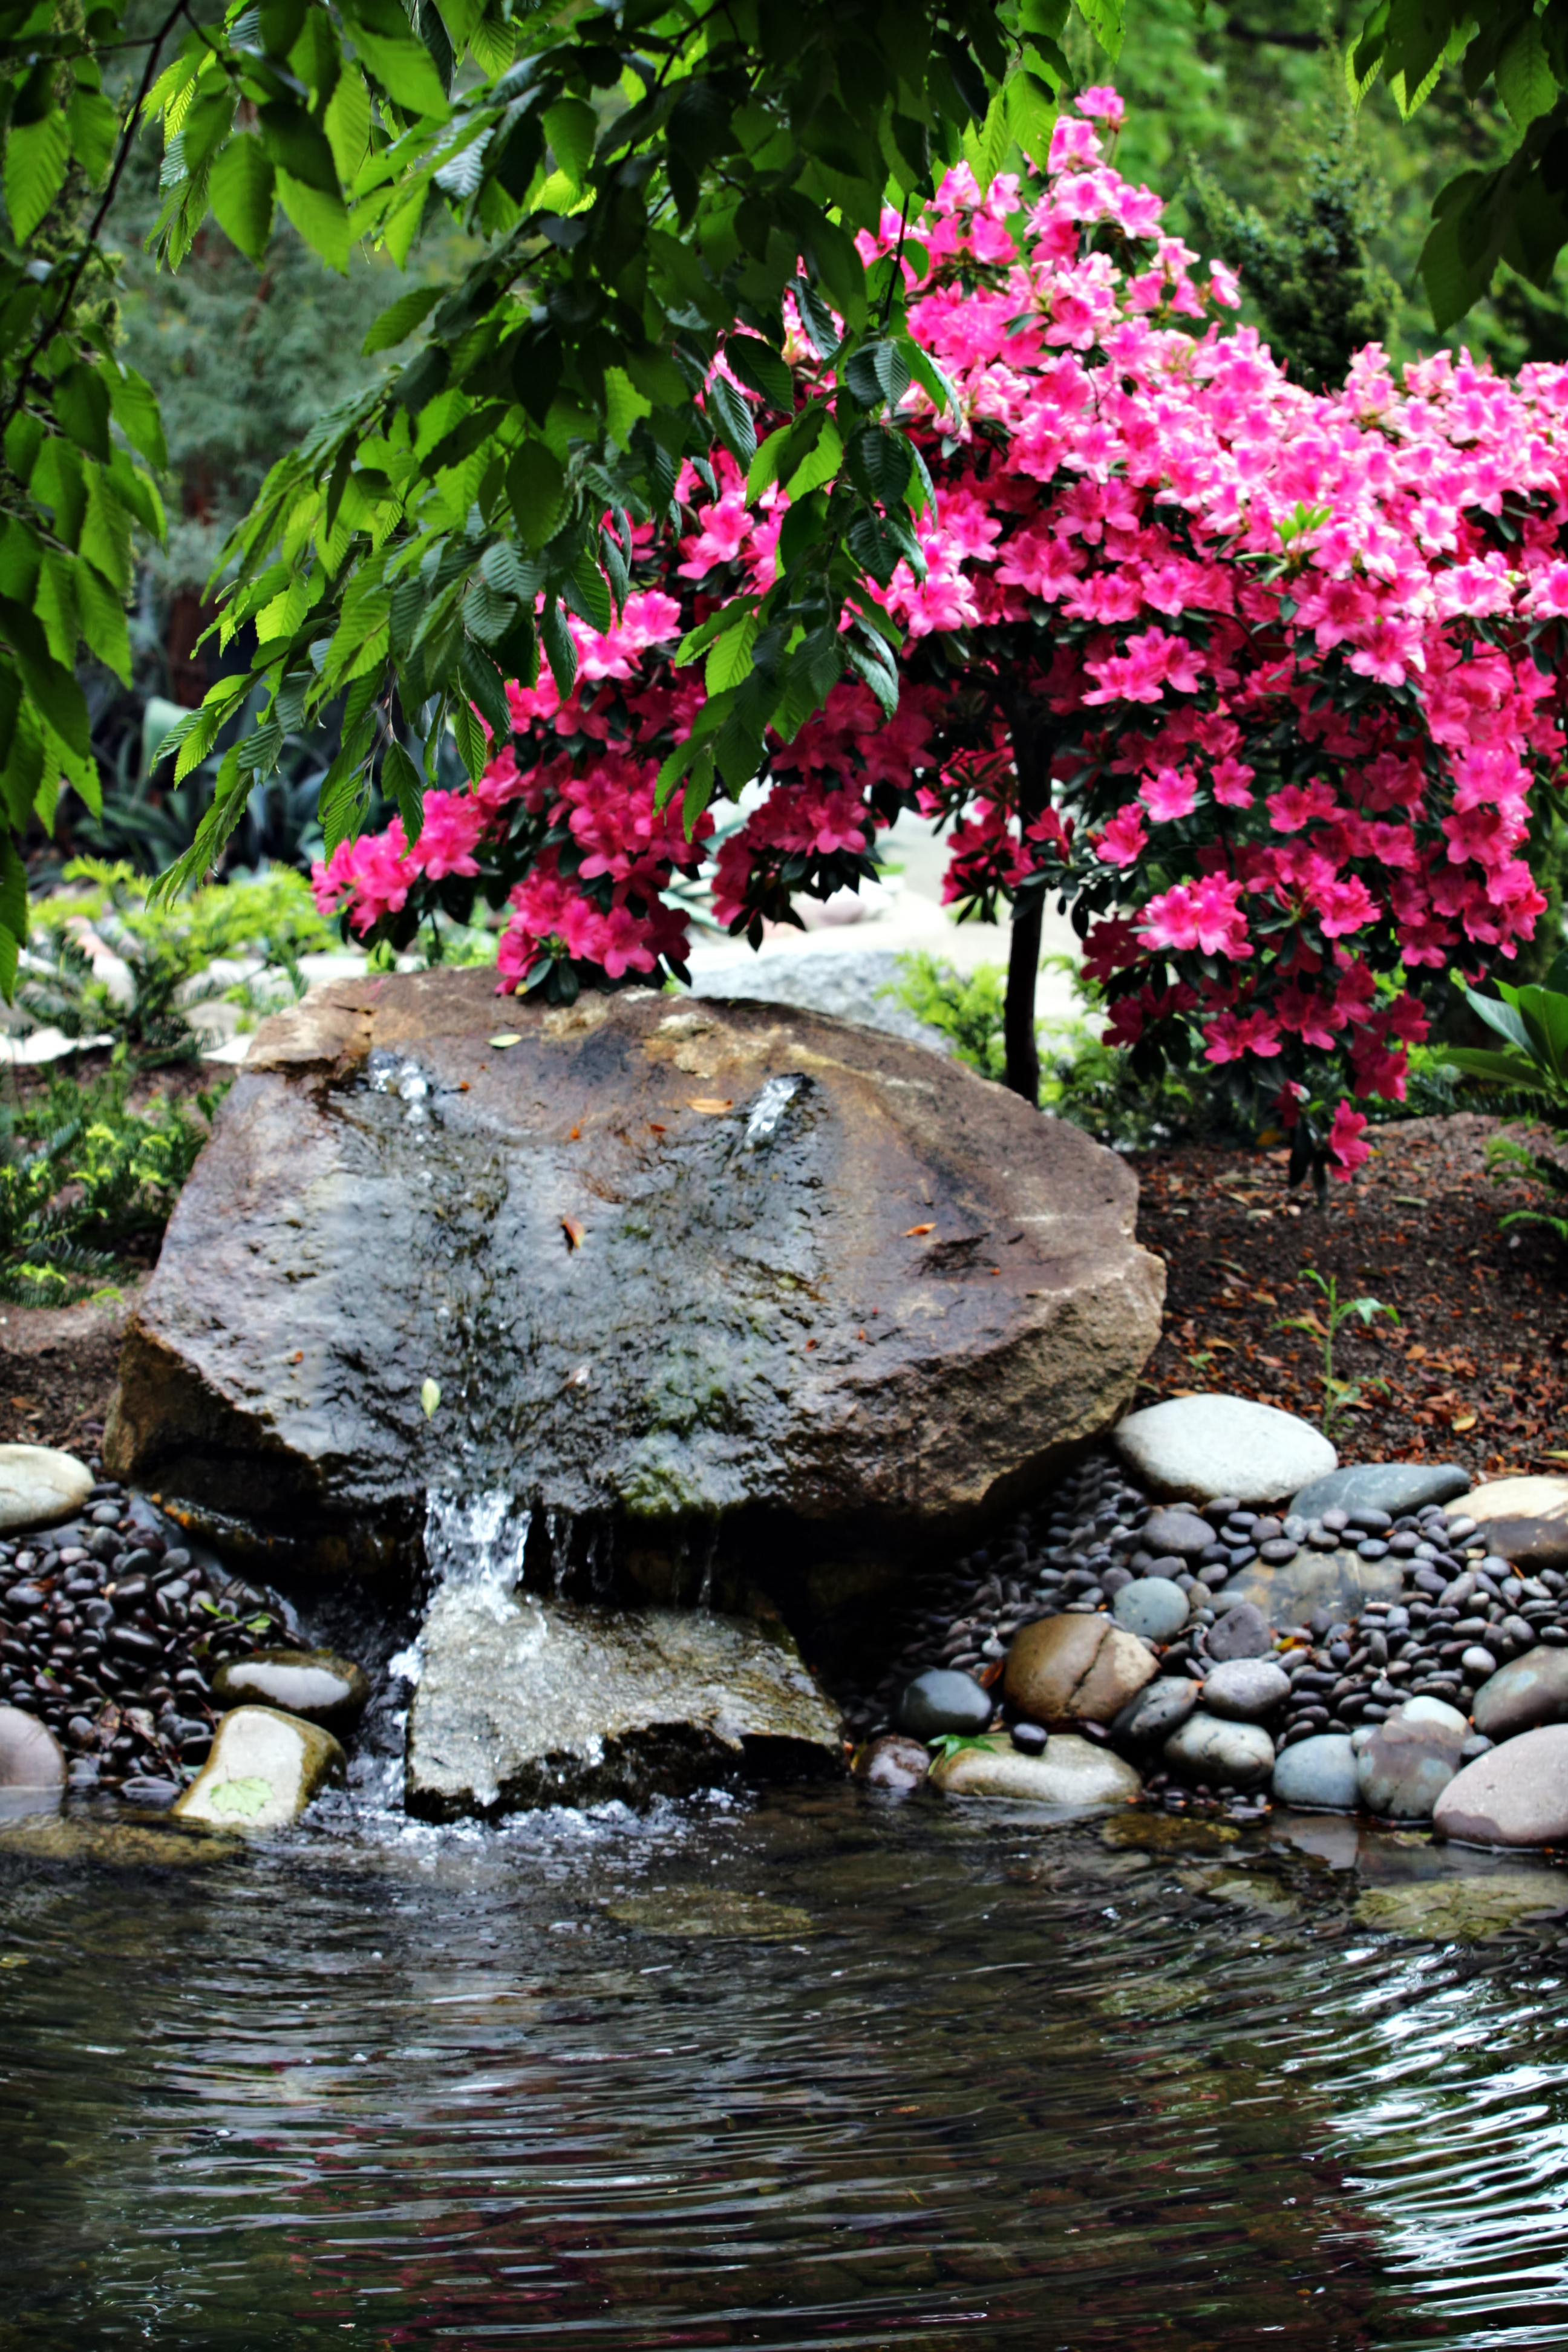 The Water Hole, Flower, Nature, Pink, Plant, HQ Photo